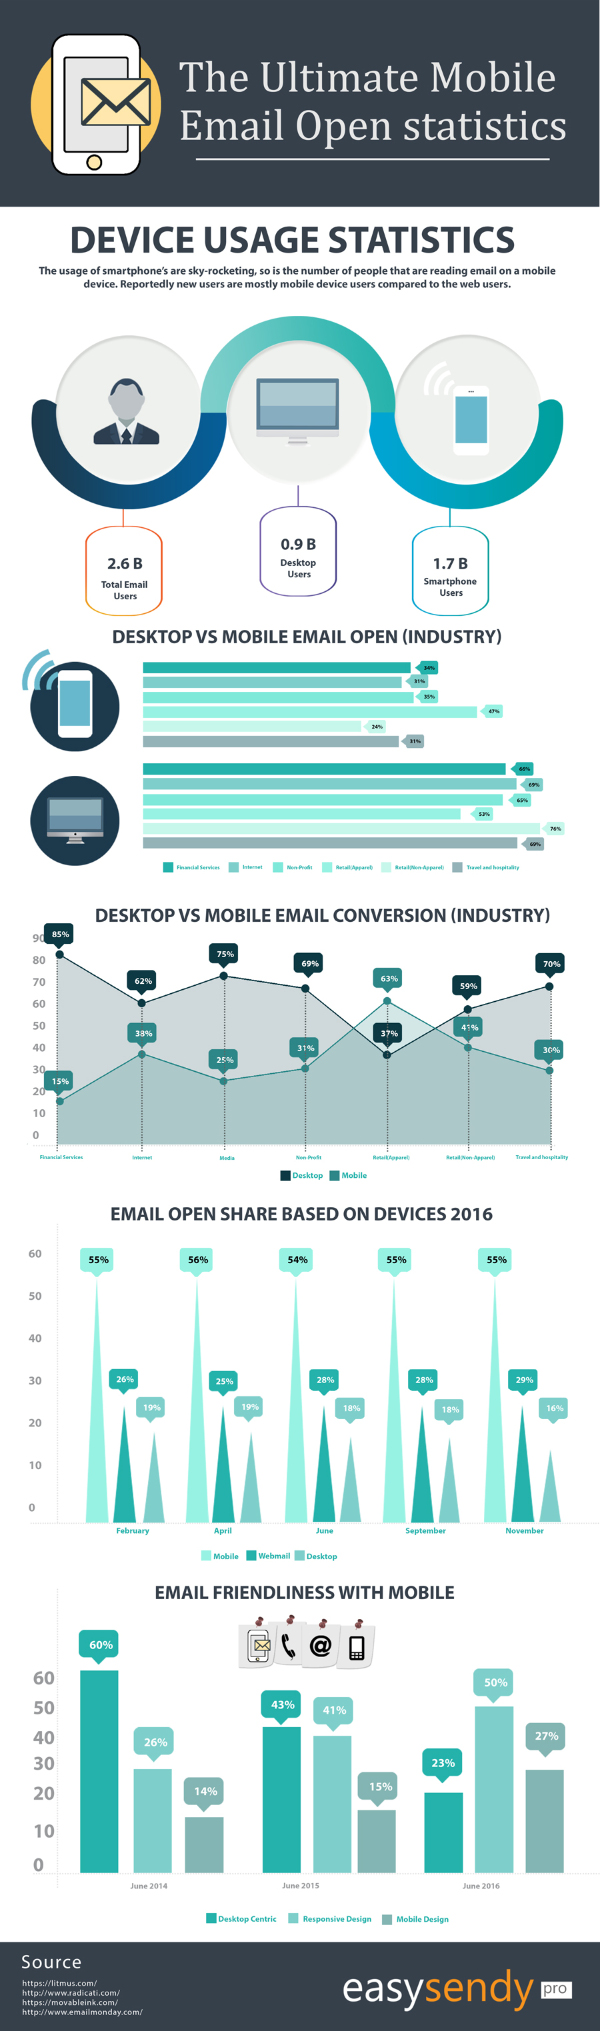 Your Guide to Email Open Statistics on Mobiles